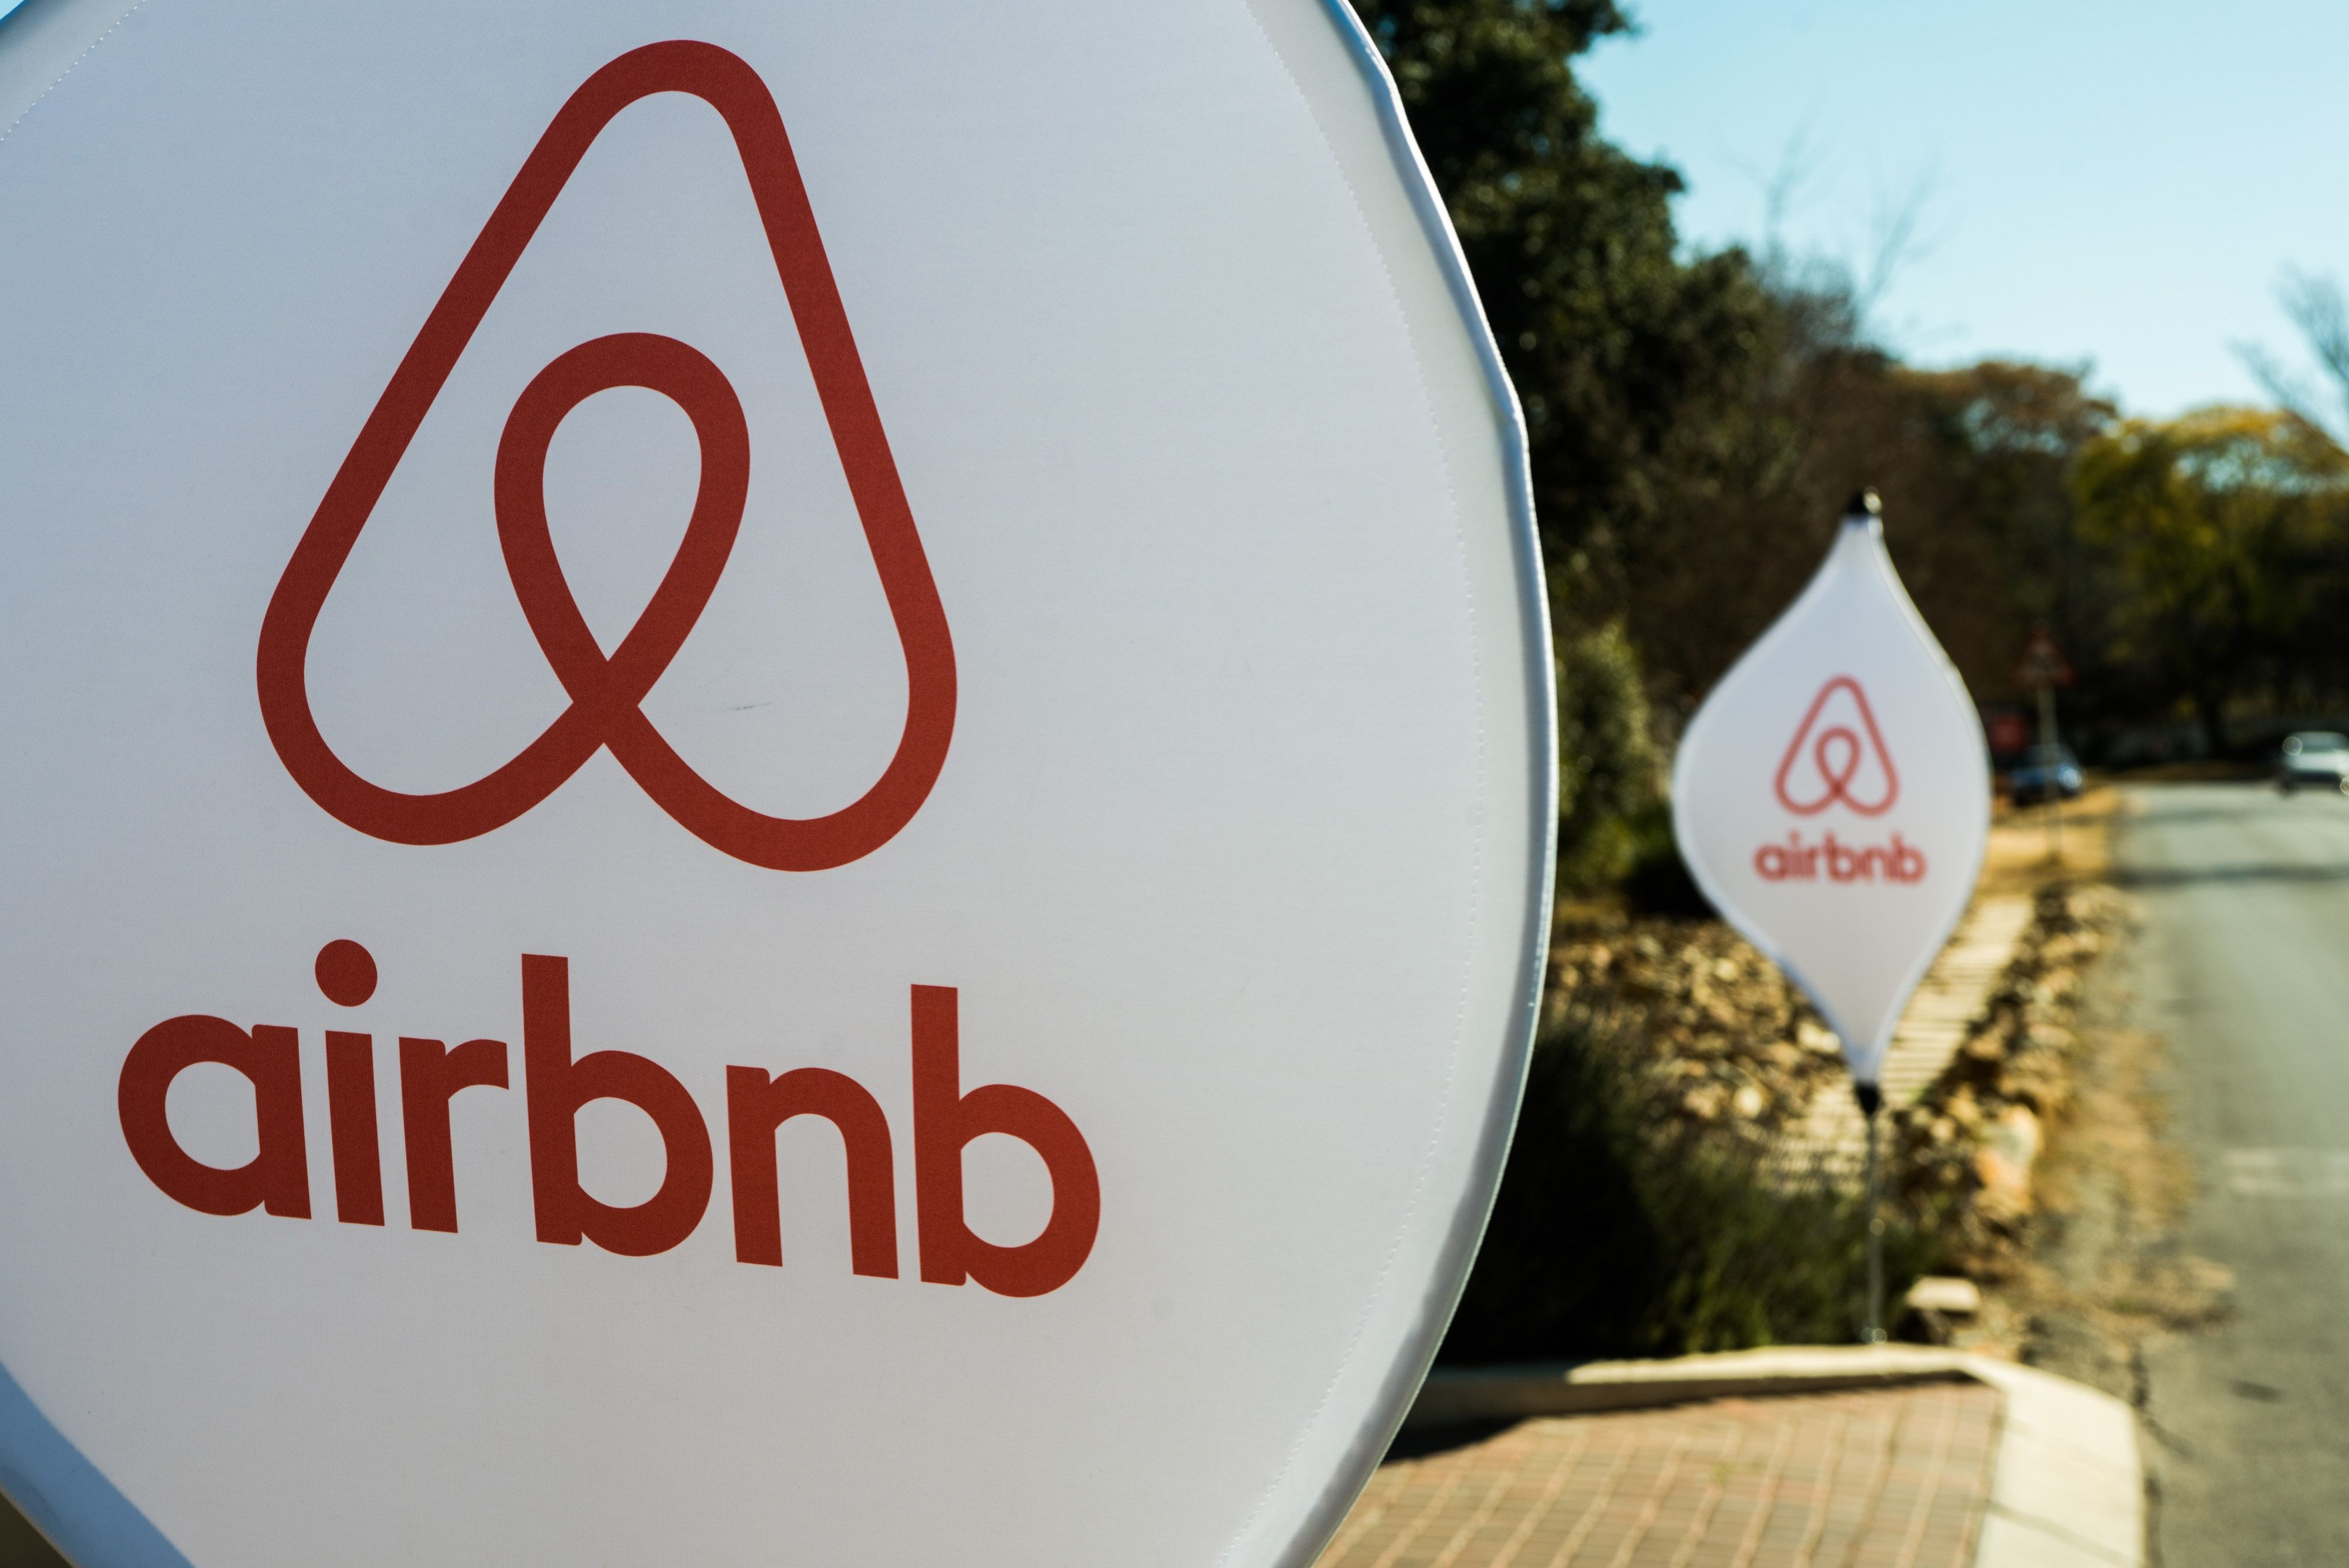 The logos of Airbnb Inc. sit on banners displayed outside a media event in Johannesburg, South Africa, on Monday, July 27, 2015. Airbnb is hoping to spread its unique brand of hospitality throughout Africa. Photographer: Waldo Swiegers/Bloomberg via Getty Images